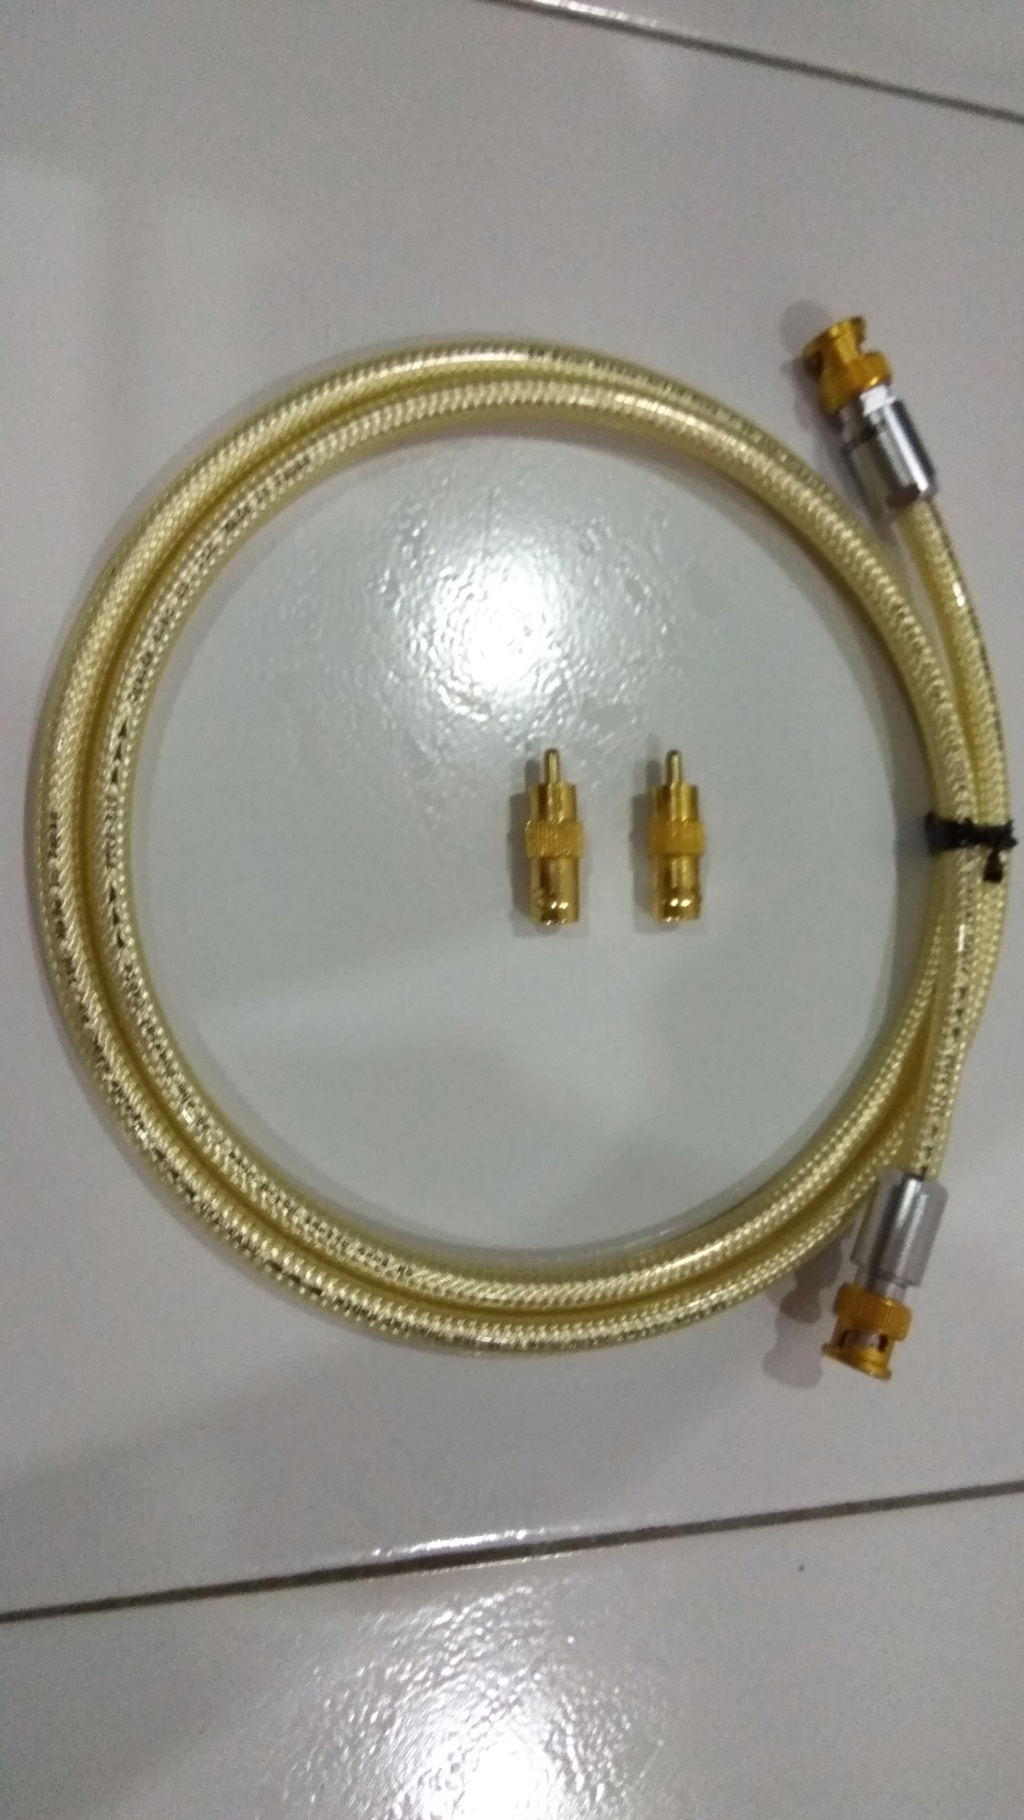 Oyaide DB-510 5N Pure Silver Solid Core Digital Cable Img_2015